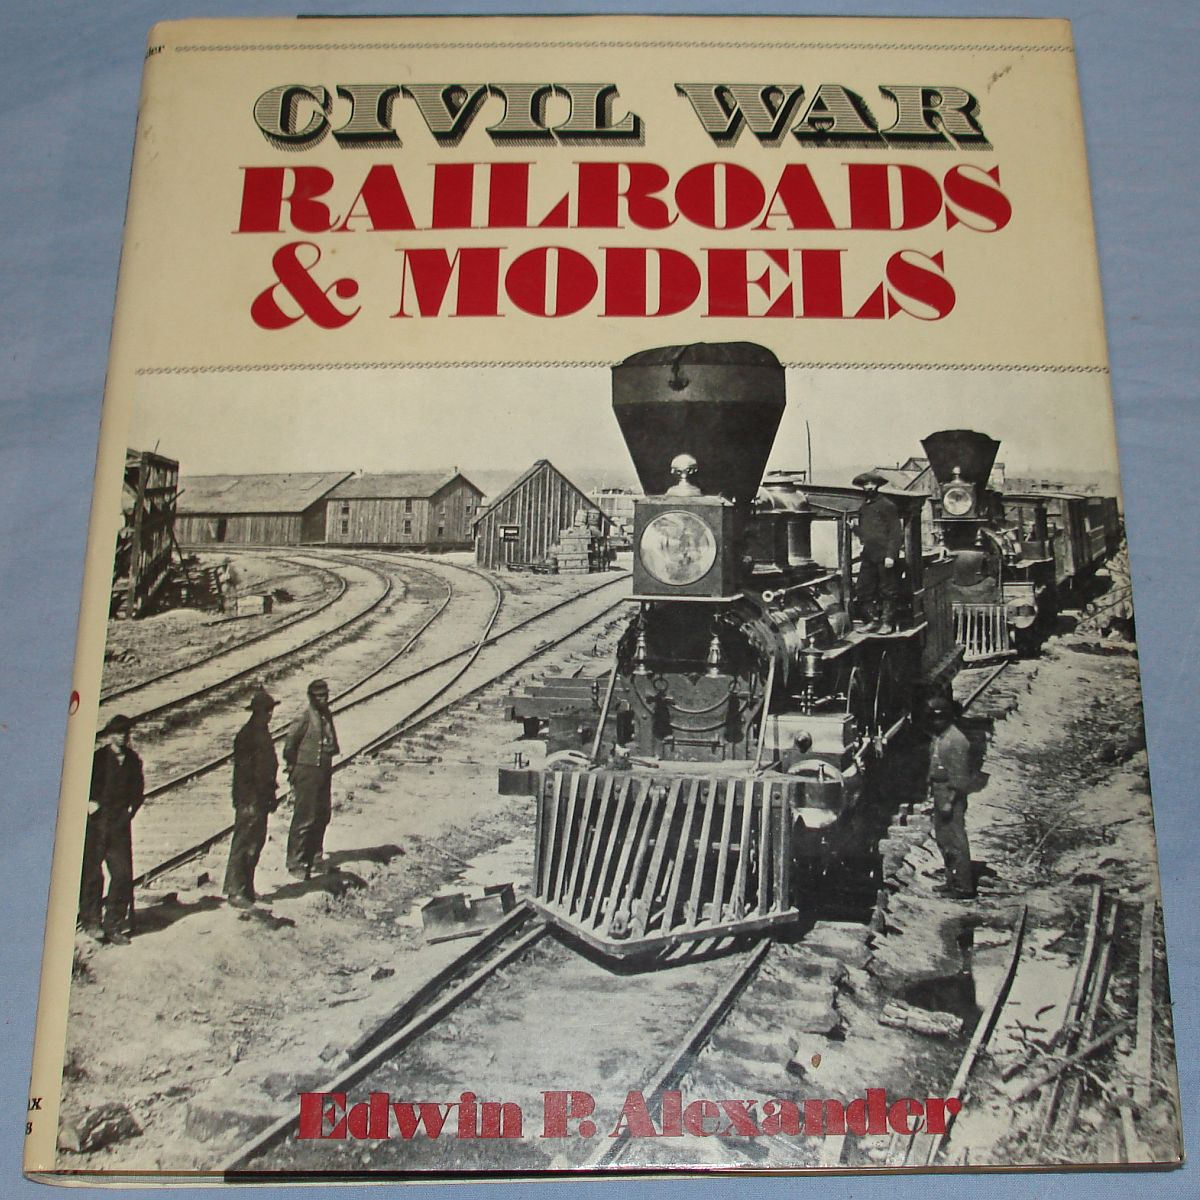 Vintage Civil War Railroads & Models Alexander 1989 256 Pages